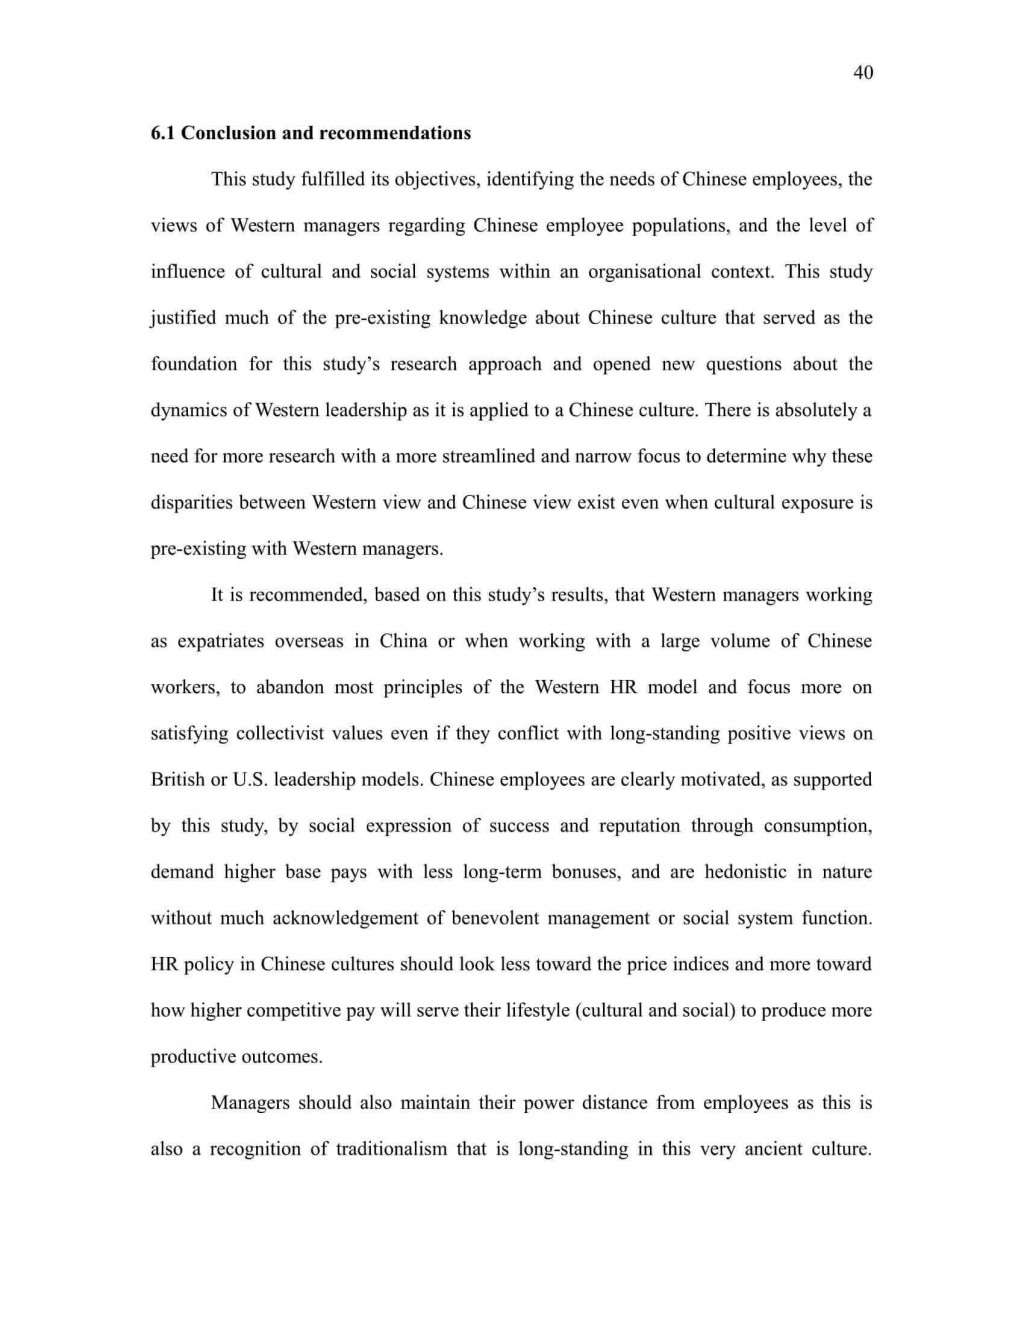 005 Essay Example Culture Stirring Chinese Introduction Organizational Questions Clash Examples Large